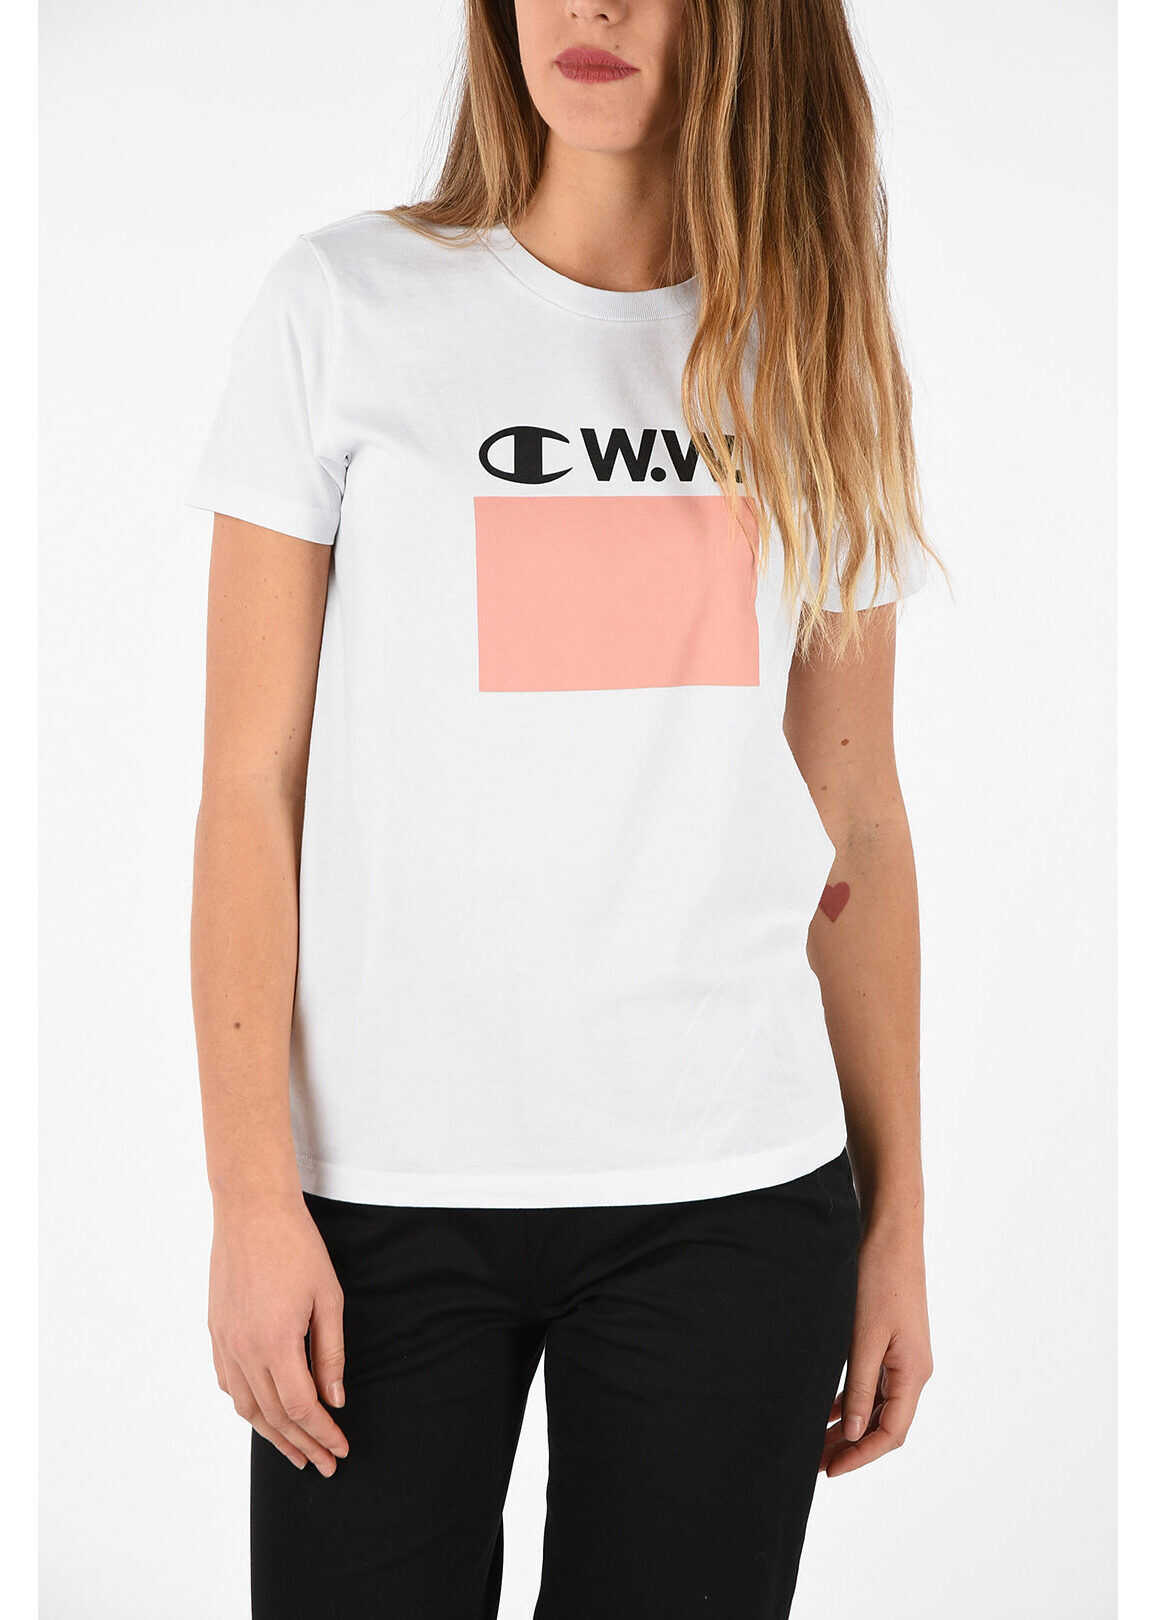 Champion WOOD WOOD T-shirt with Print WHITE